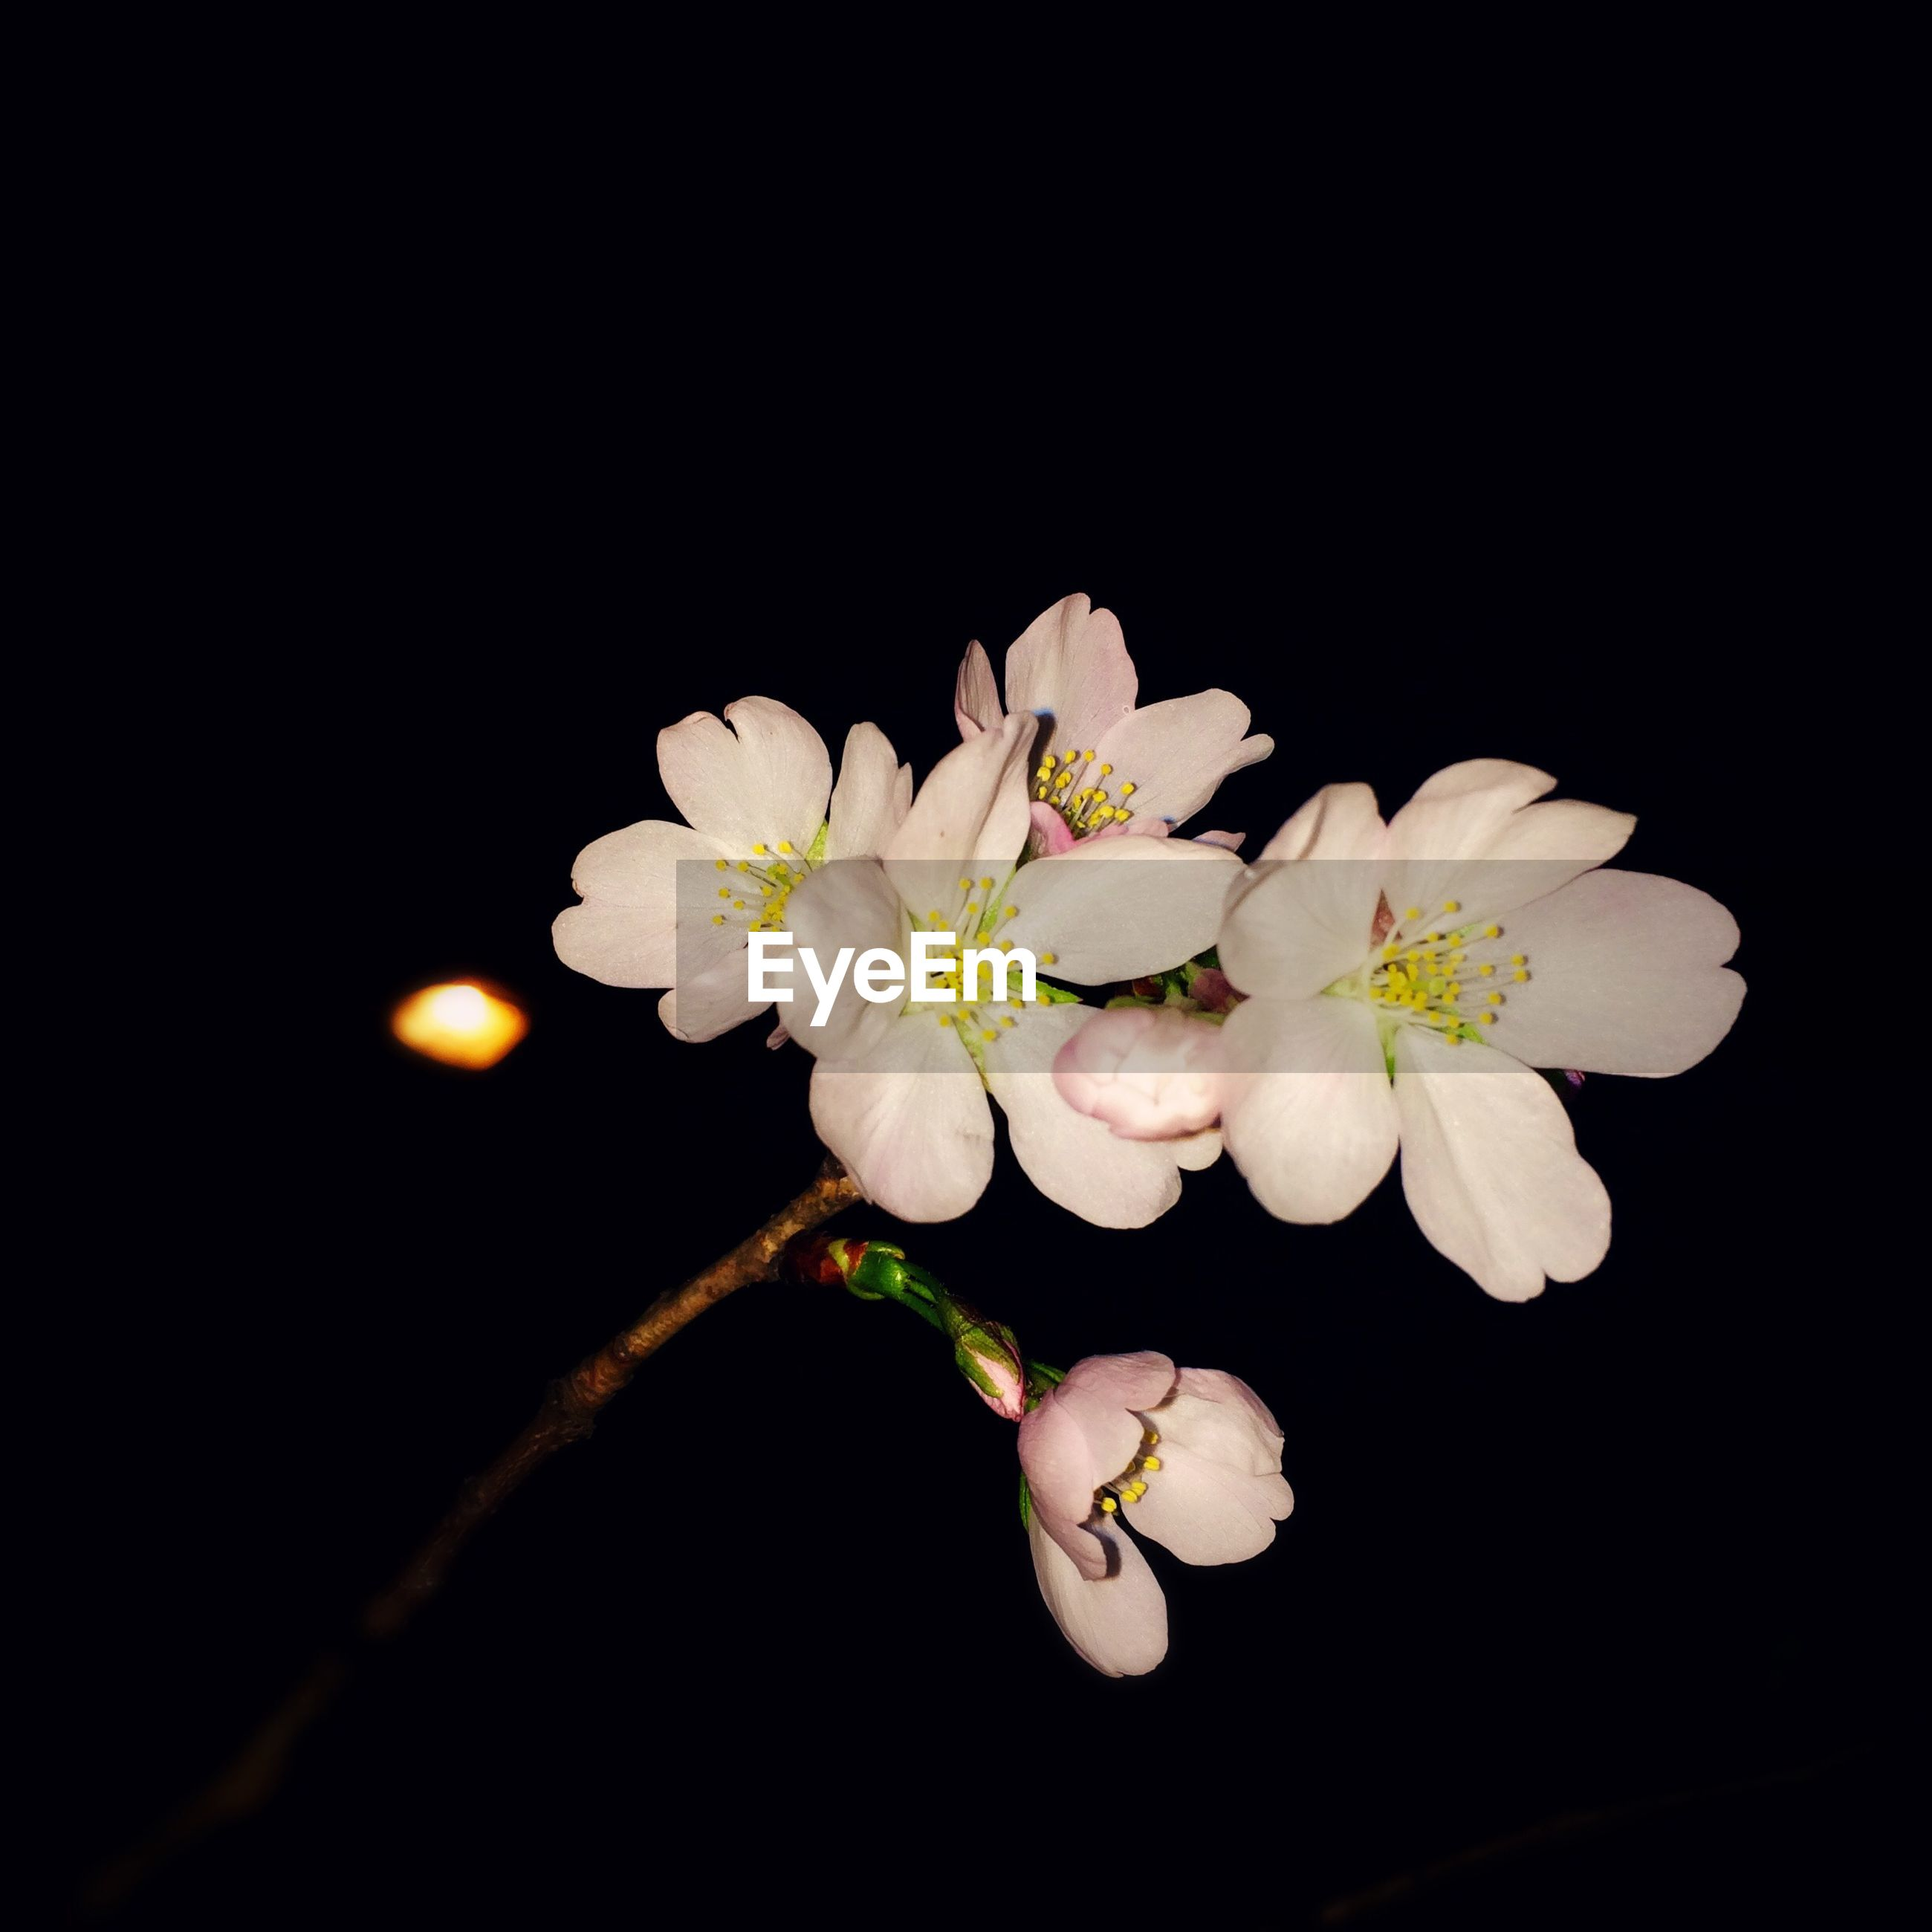 flower, freshness, petal, fragility, white color, growth, beauty in nature, flower head, nature, close-up, blossom, blooming, in bloom, night, copy space, studio shot, white, botany, plant, black background